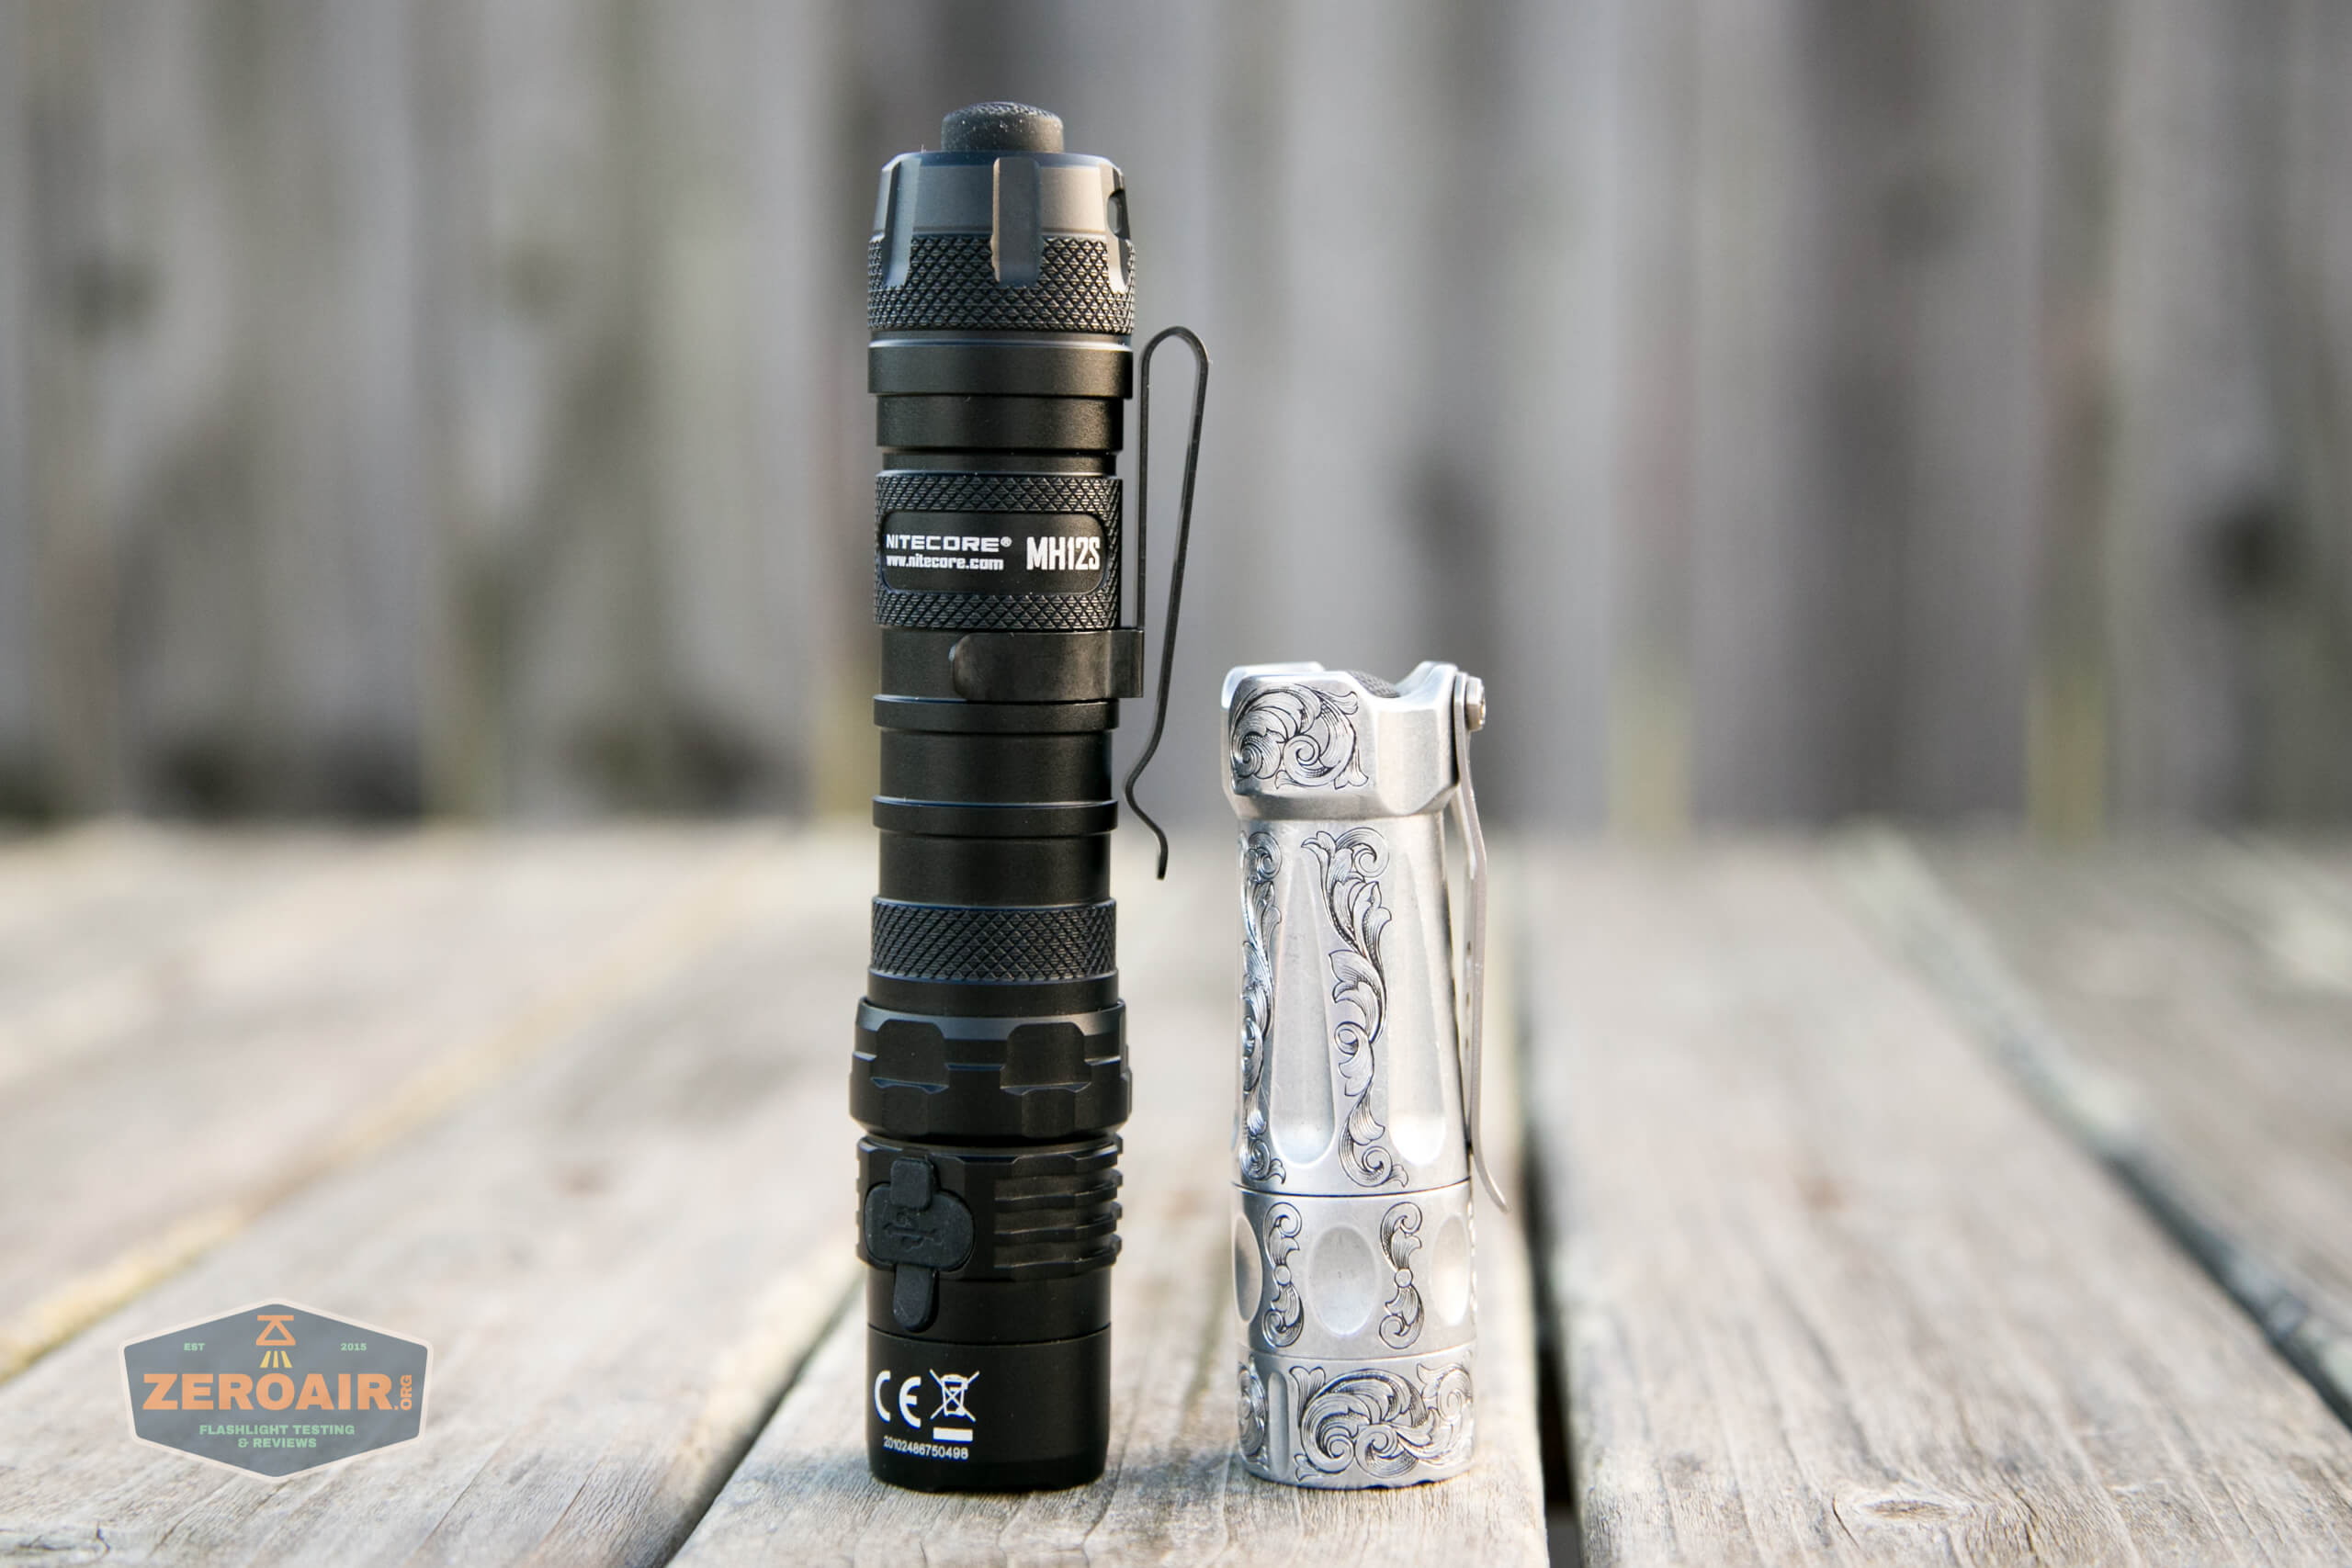 nitecore mh12s tactical flashlight beside torchlab boss 35